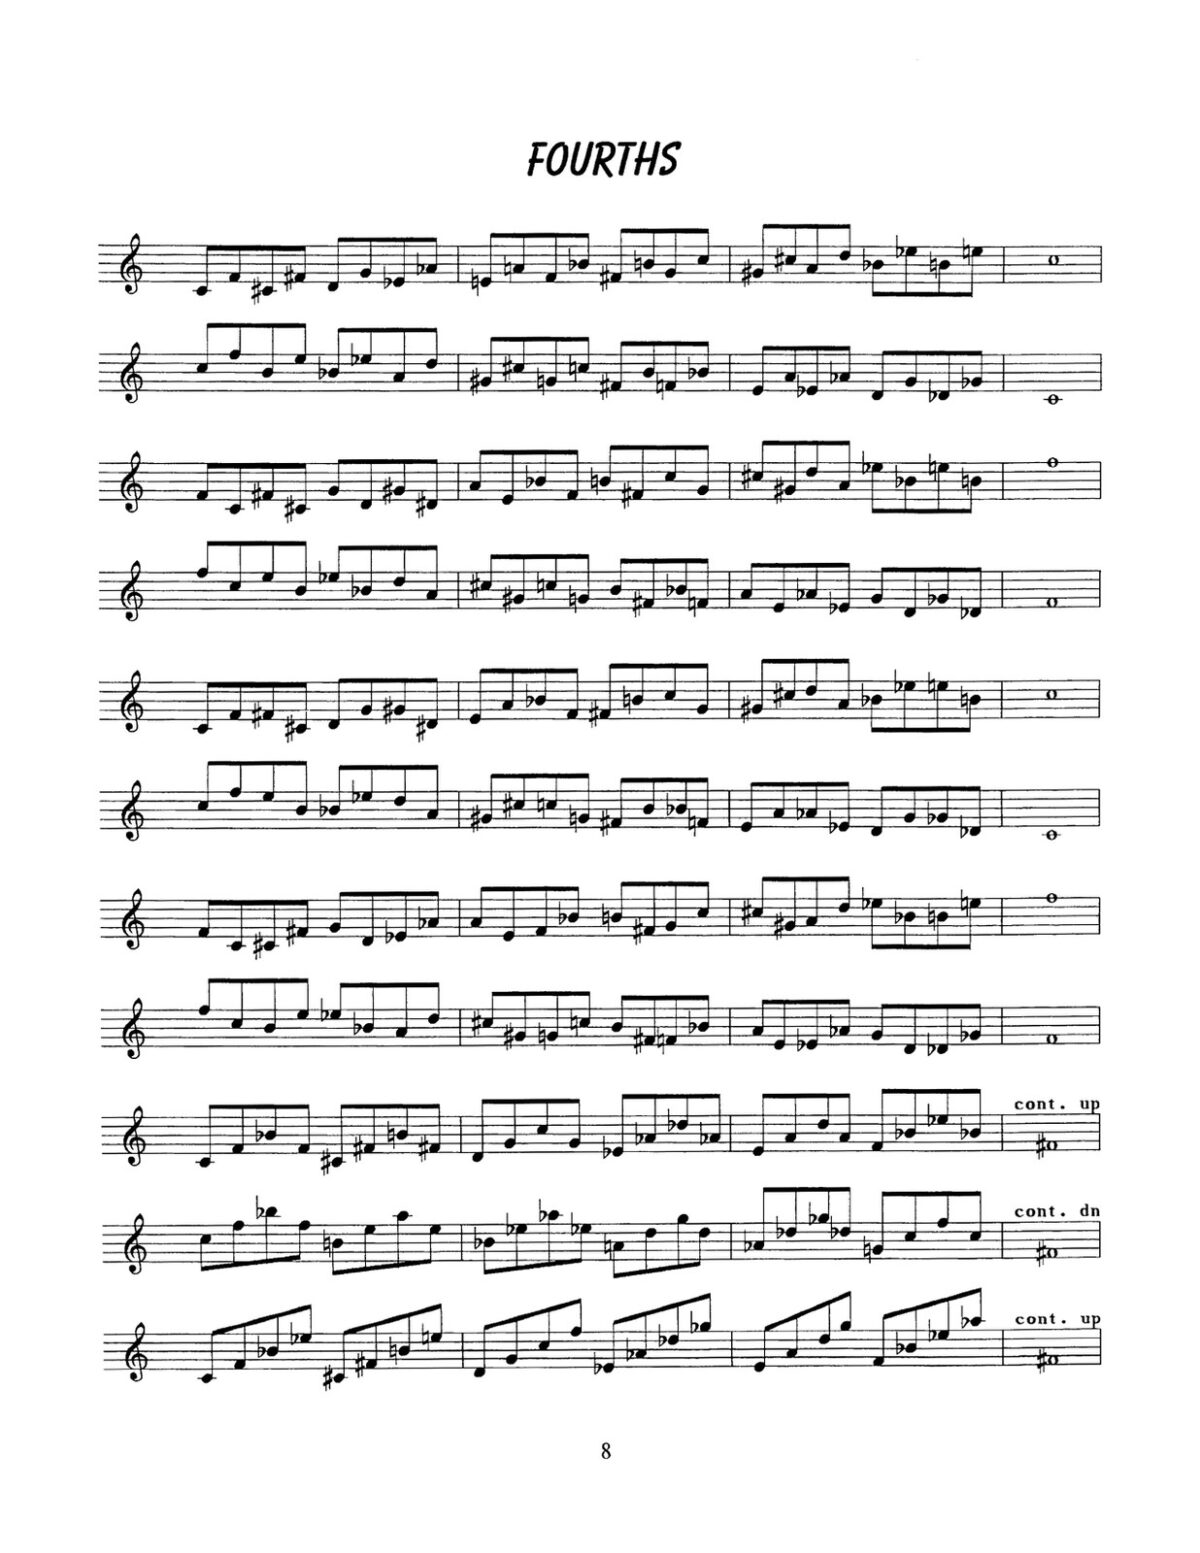 D'Aveni, Jazz Trumpet Technique Vol.1 Flexibility-p10a